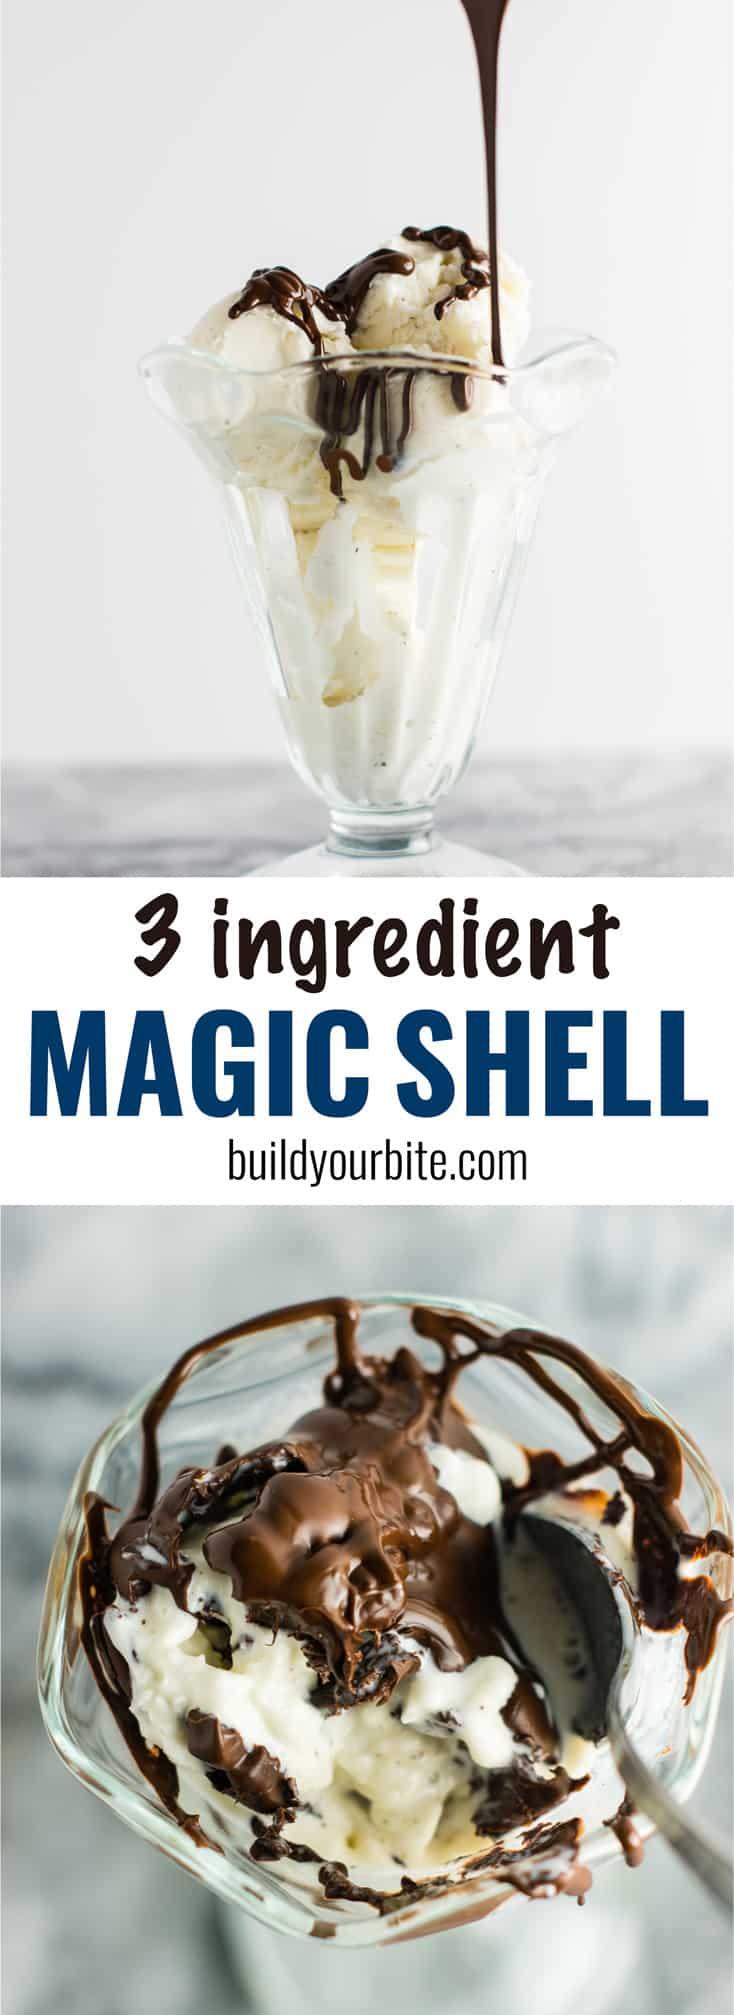 Healthy homemade magic shell recipe made with just 3 ingredients. You'll love this easy recipe! #magicshell #dessert #glutenfree #dairyfree #coconutoil #vegan